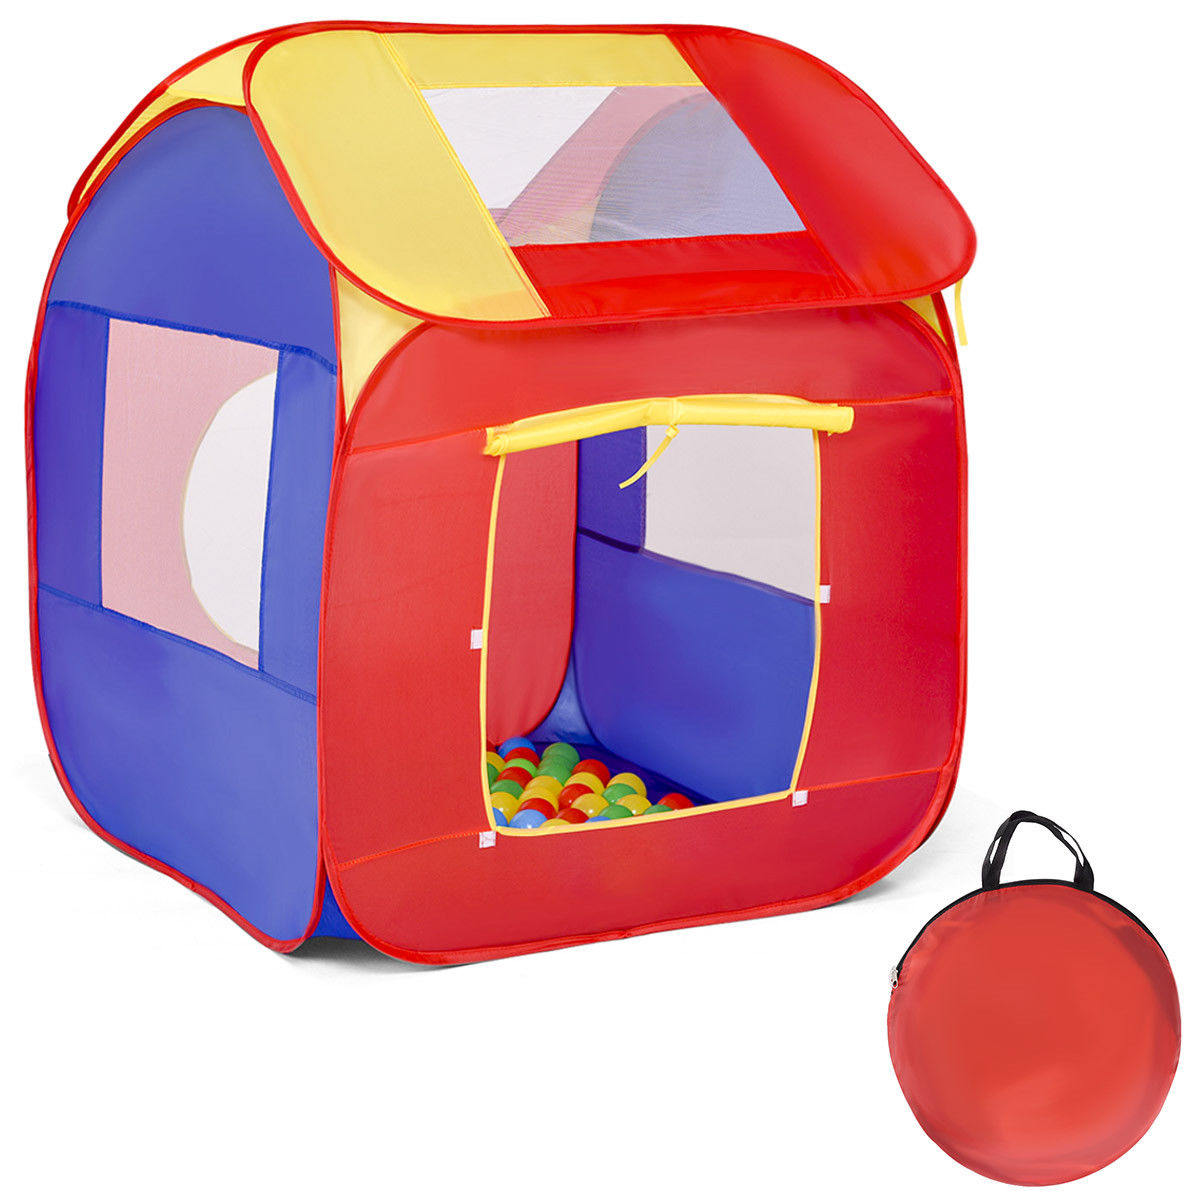 Costway Portable Kid Baby Play House Toy Tent Game Playhut 100 Balls Indoor Outdoor